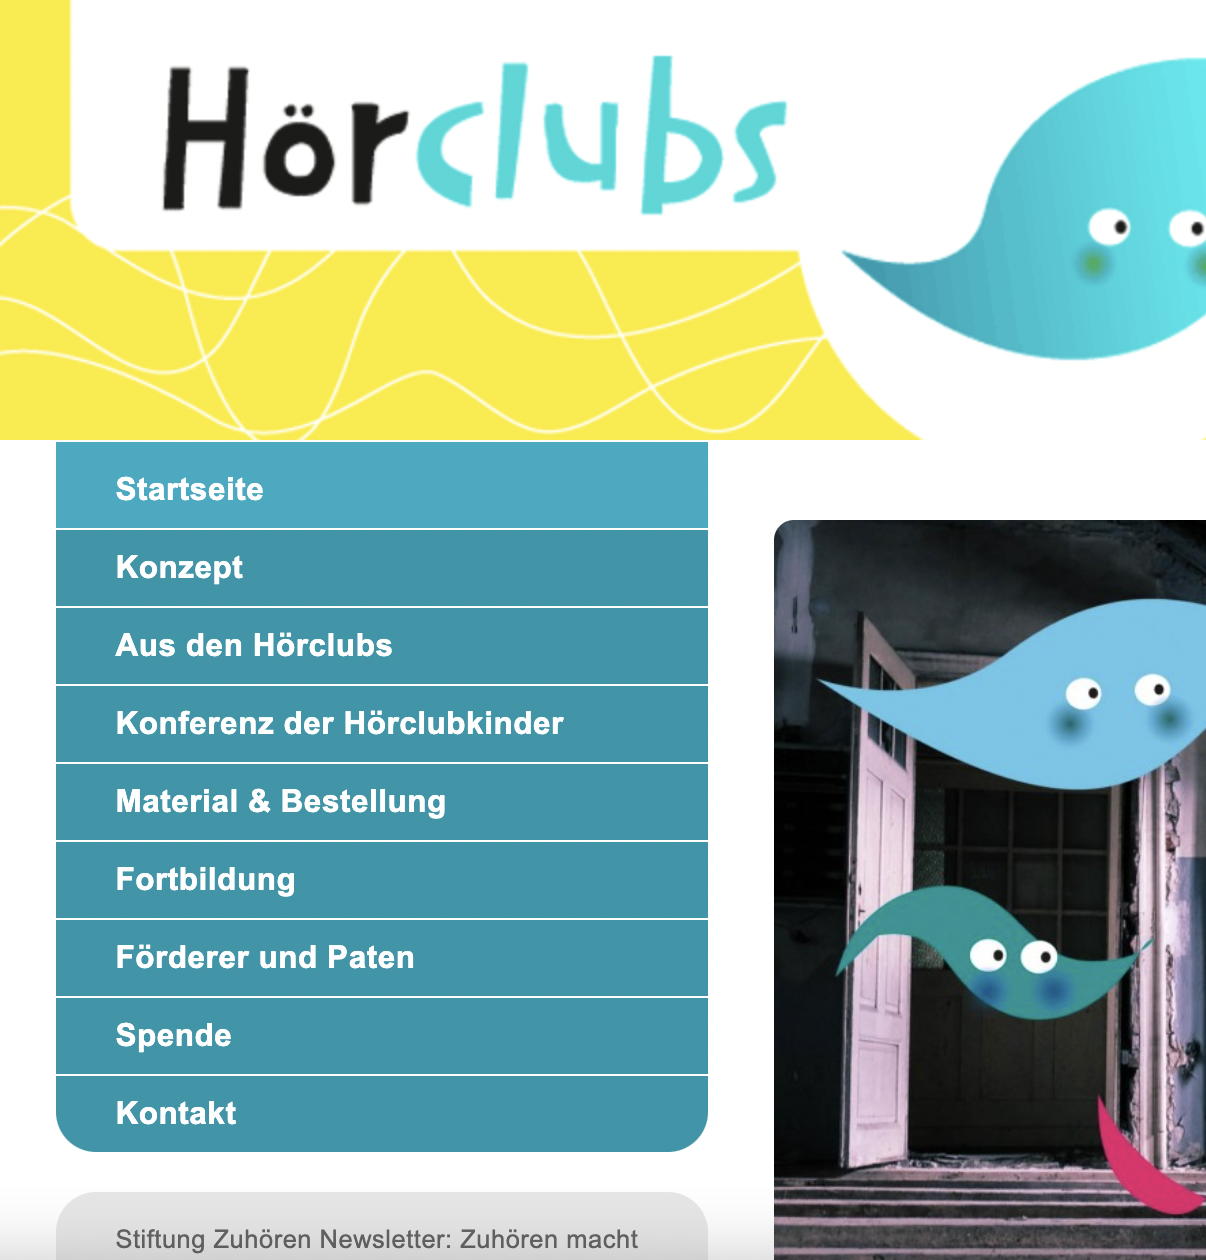 Preview image for LOM object Hörclubs